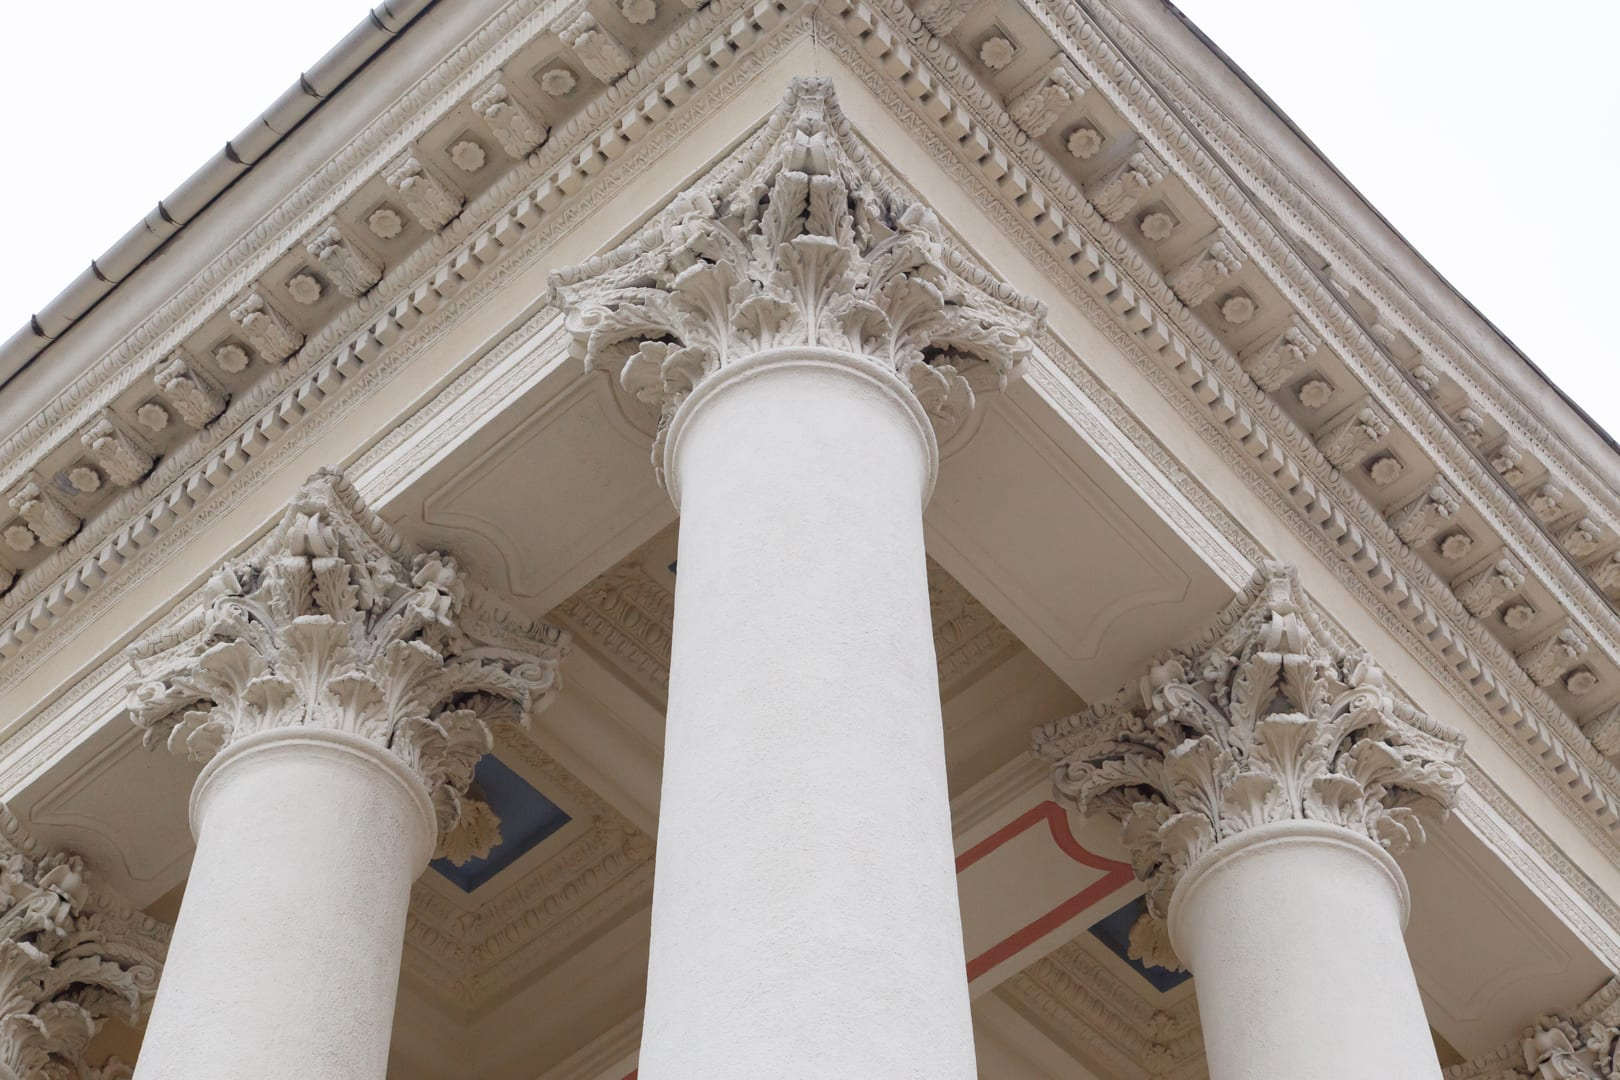 classical-pillars-with-portico-detail-PTGR5MX